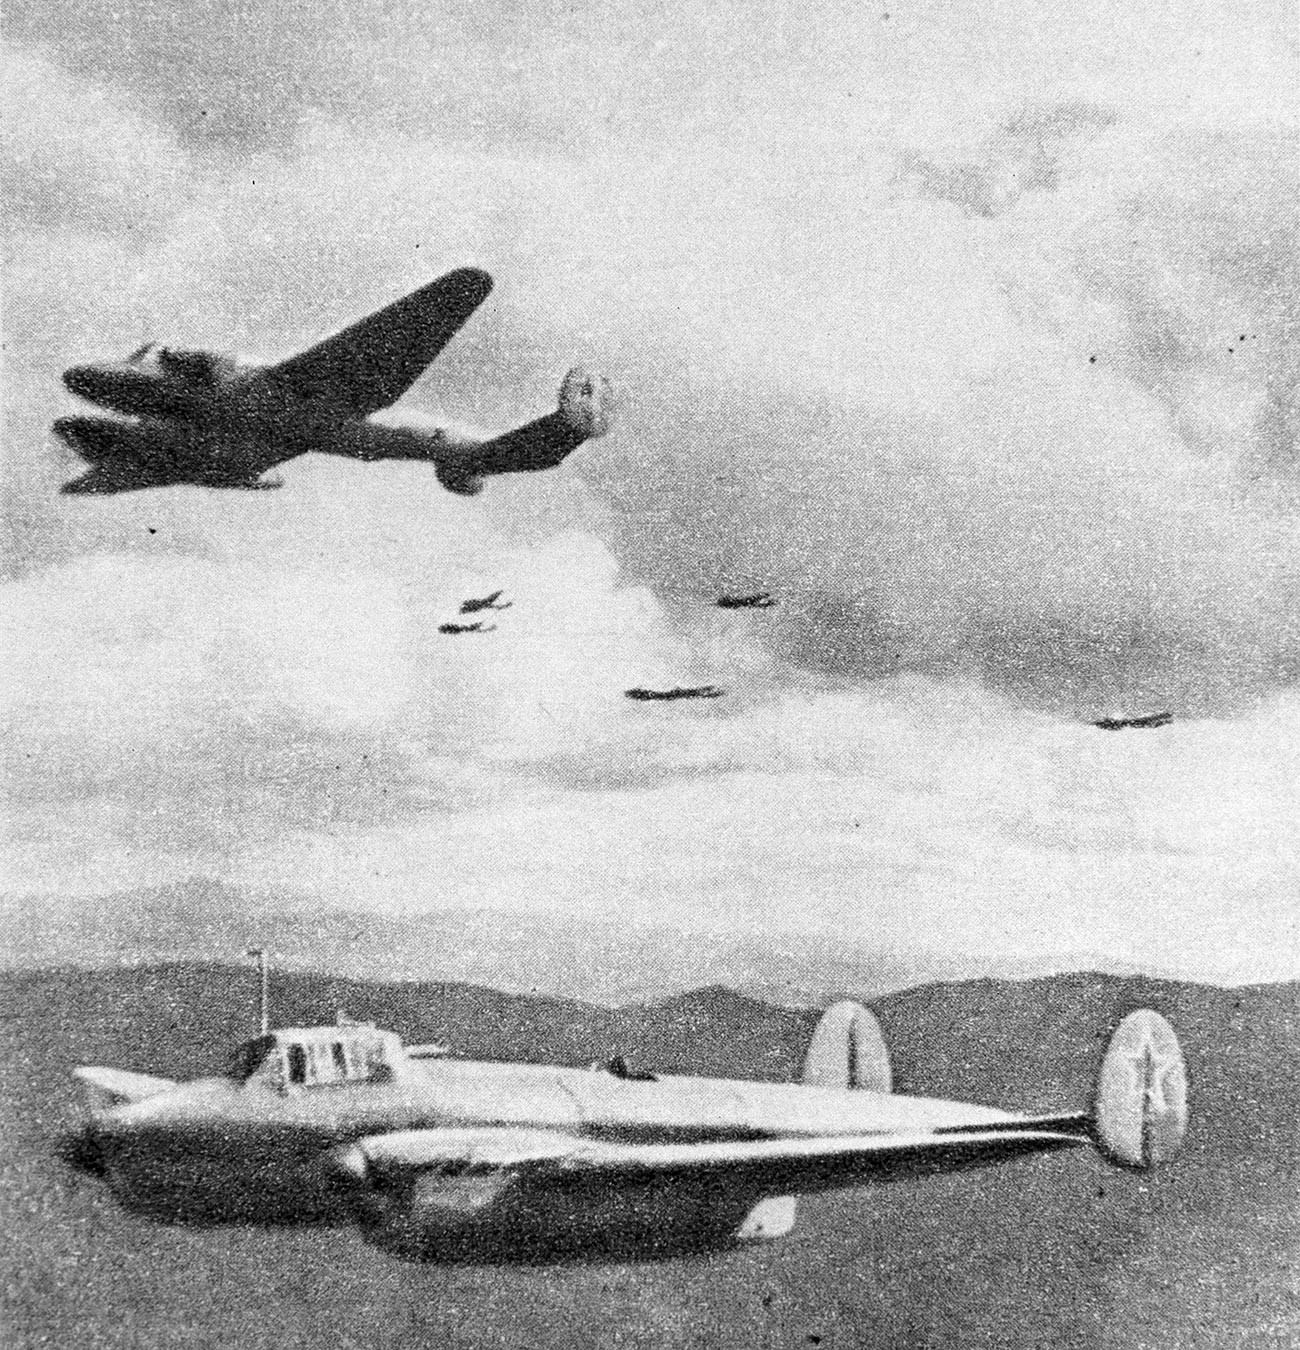 Sowjetische Bomber in China.